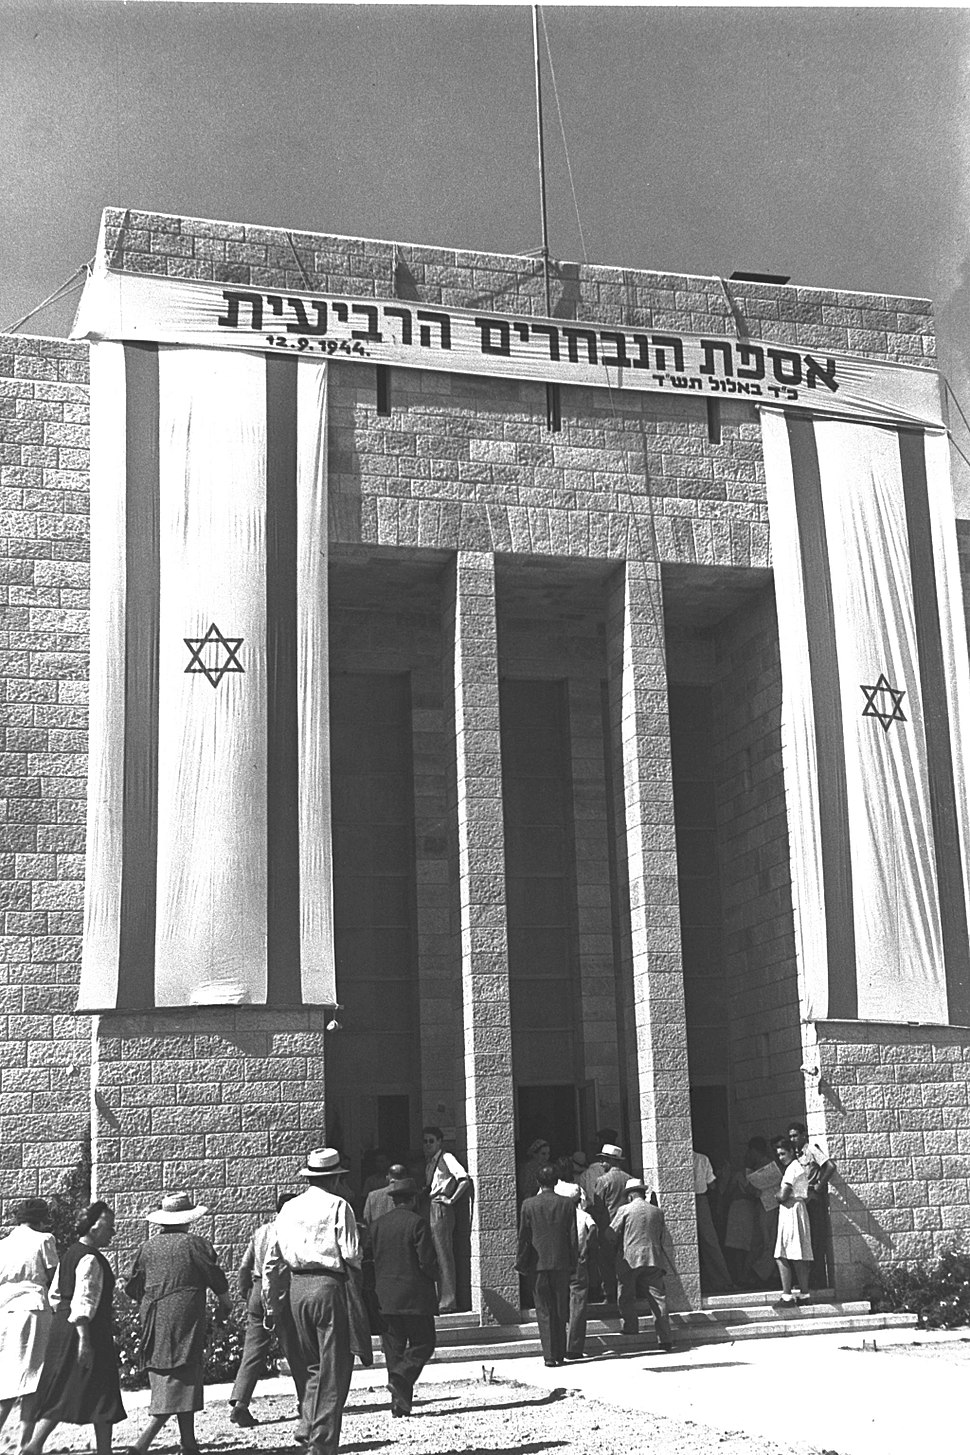 DELEGATES ENTERING THE MEETING HALL OF THE NATIONAL COUNCIL (ELECTED ASSEMBLY) IN JERUSALEM. צירים מגיעים לאספת הנבחרים הרביעית בירושלים.D22-035